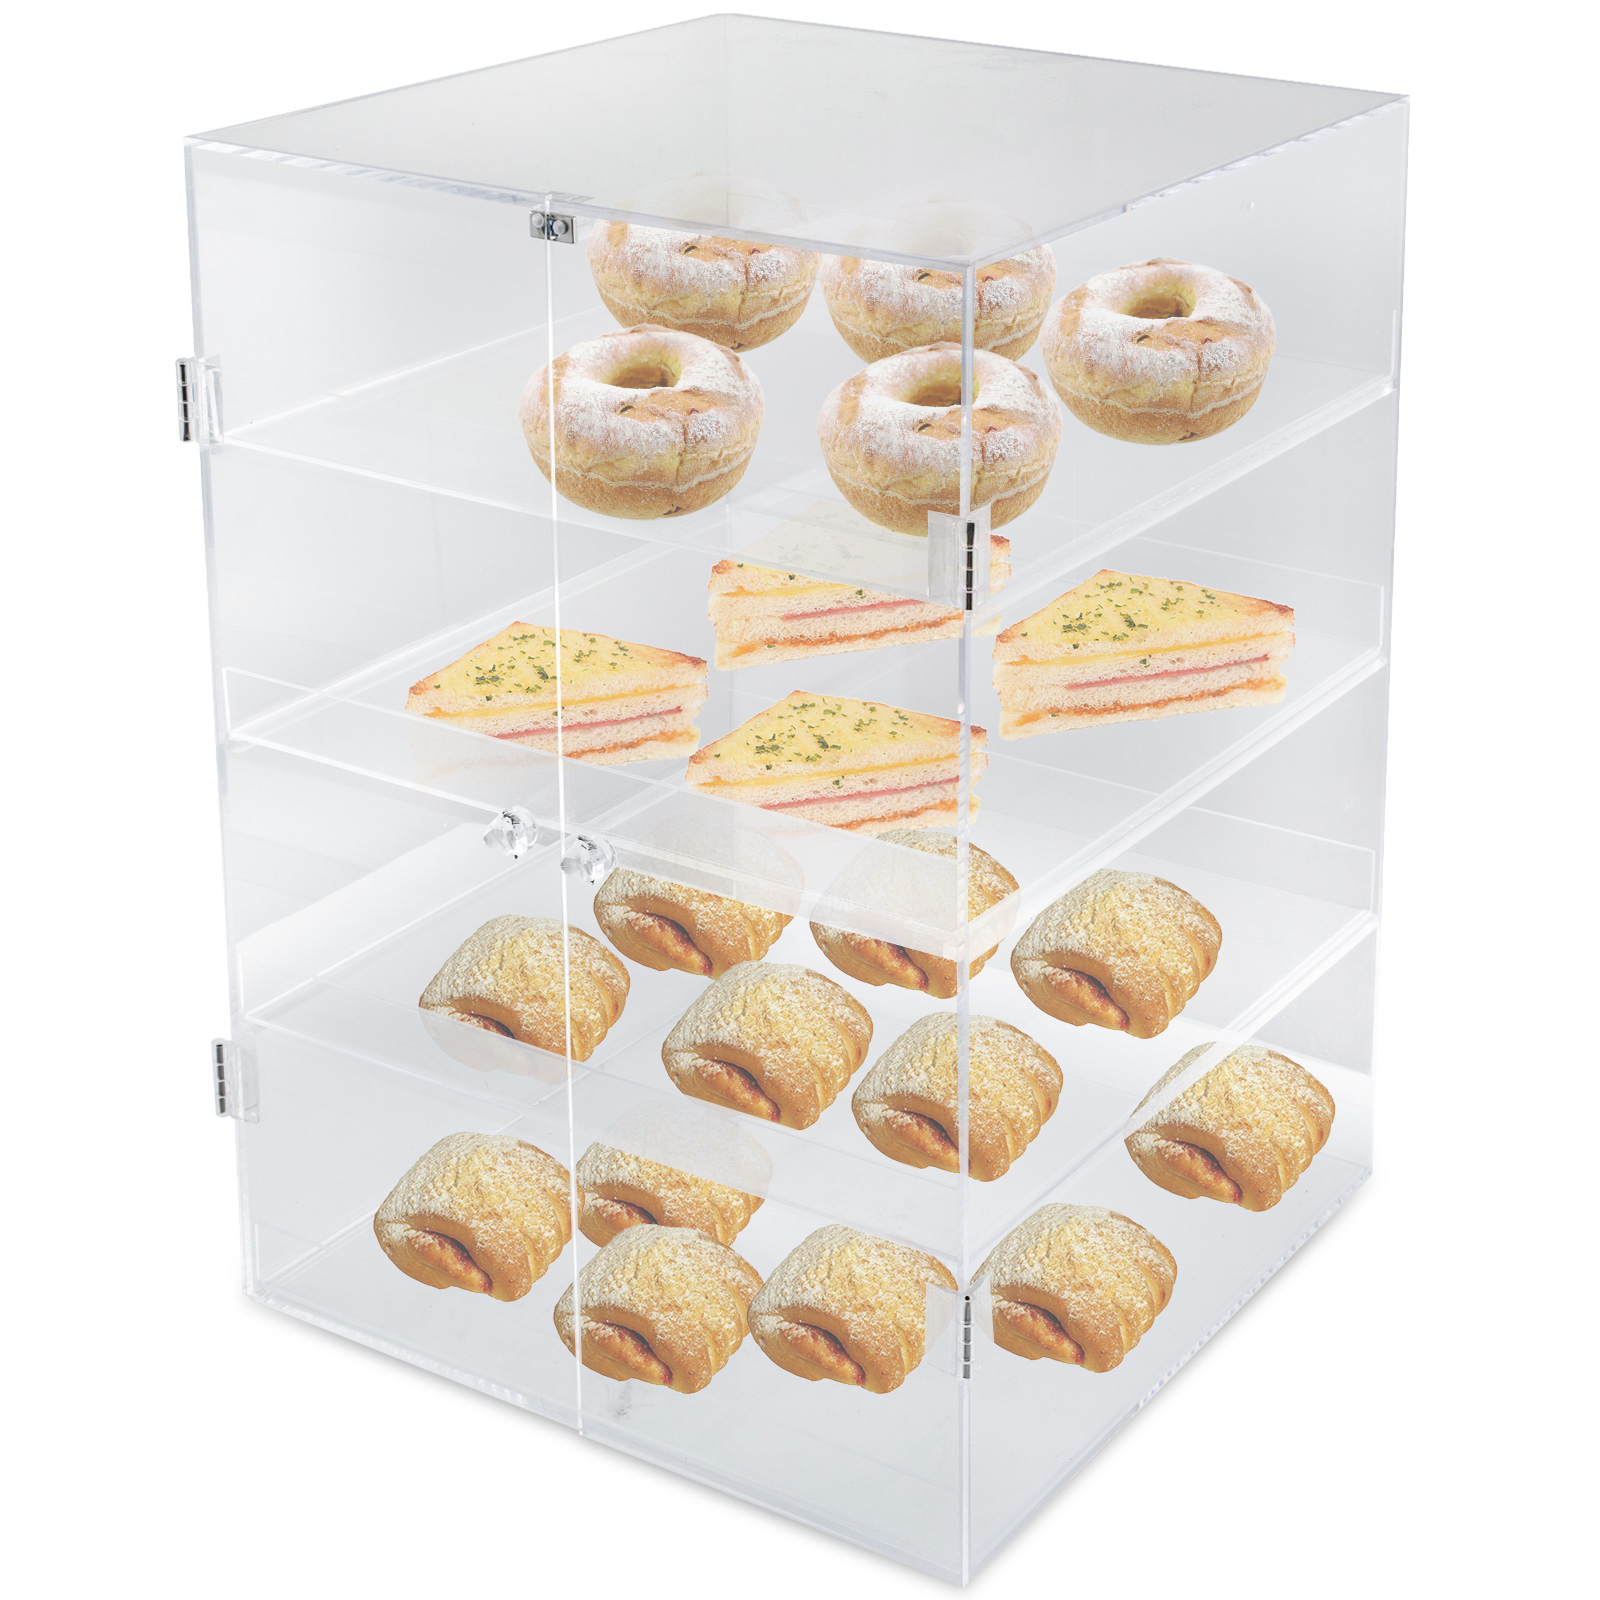 thumbnail 13 - 2-3-4-Shelves-Acrylic-Cake-Display-Cabinet-Bakery-Muffin-Cupcake-Donut-Pastries